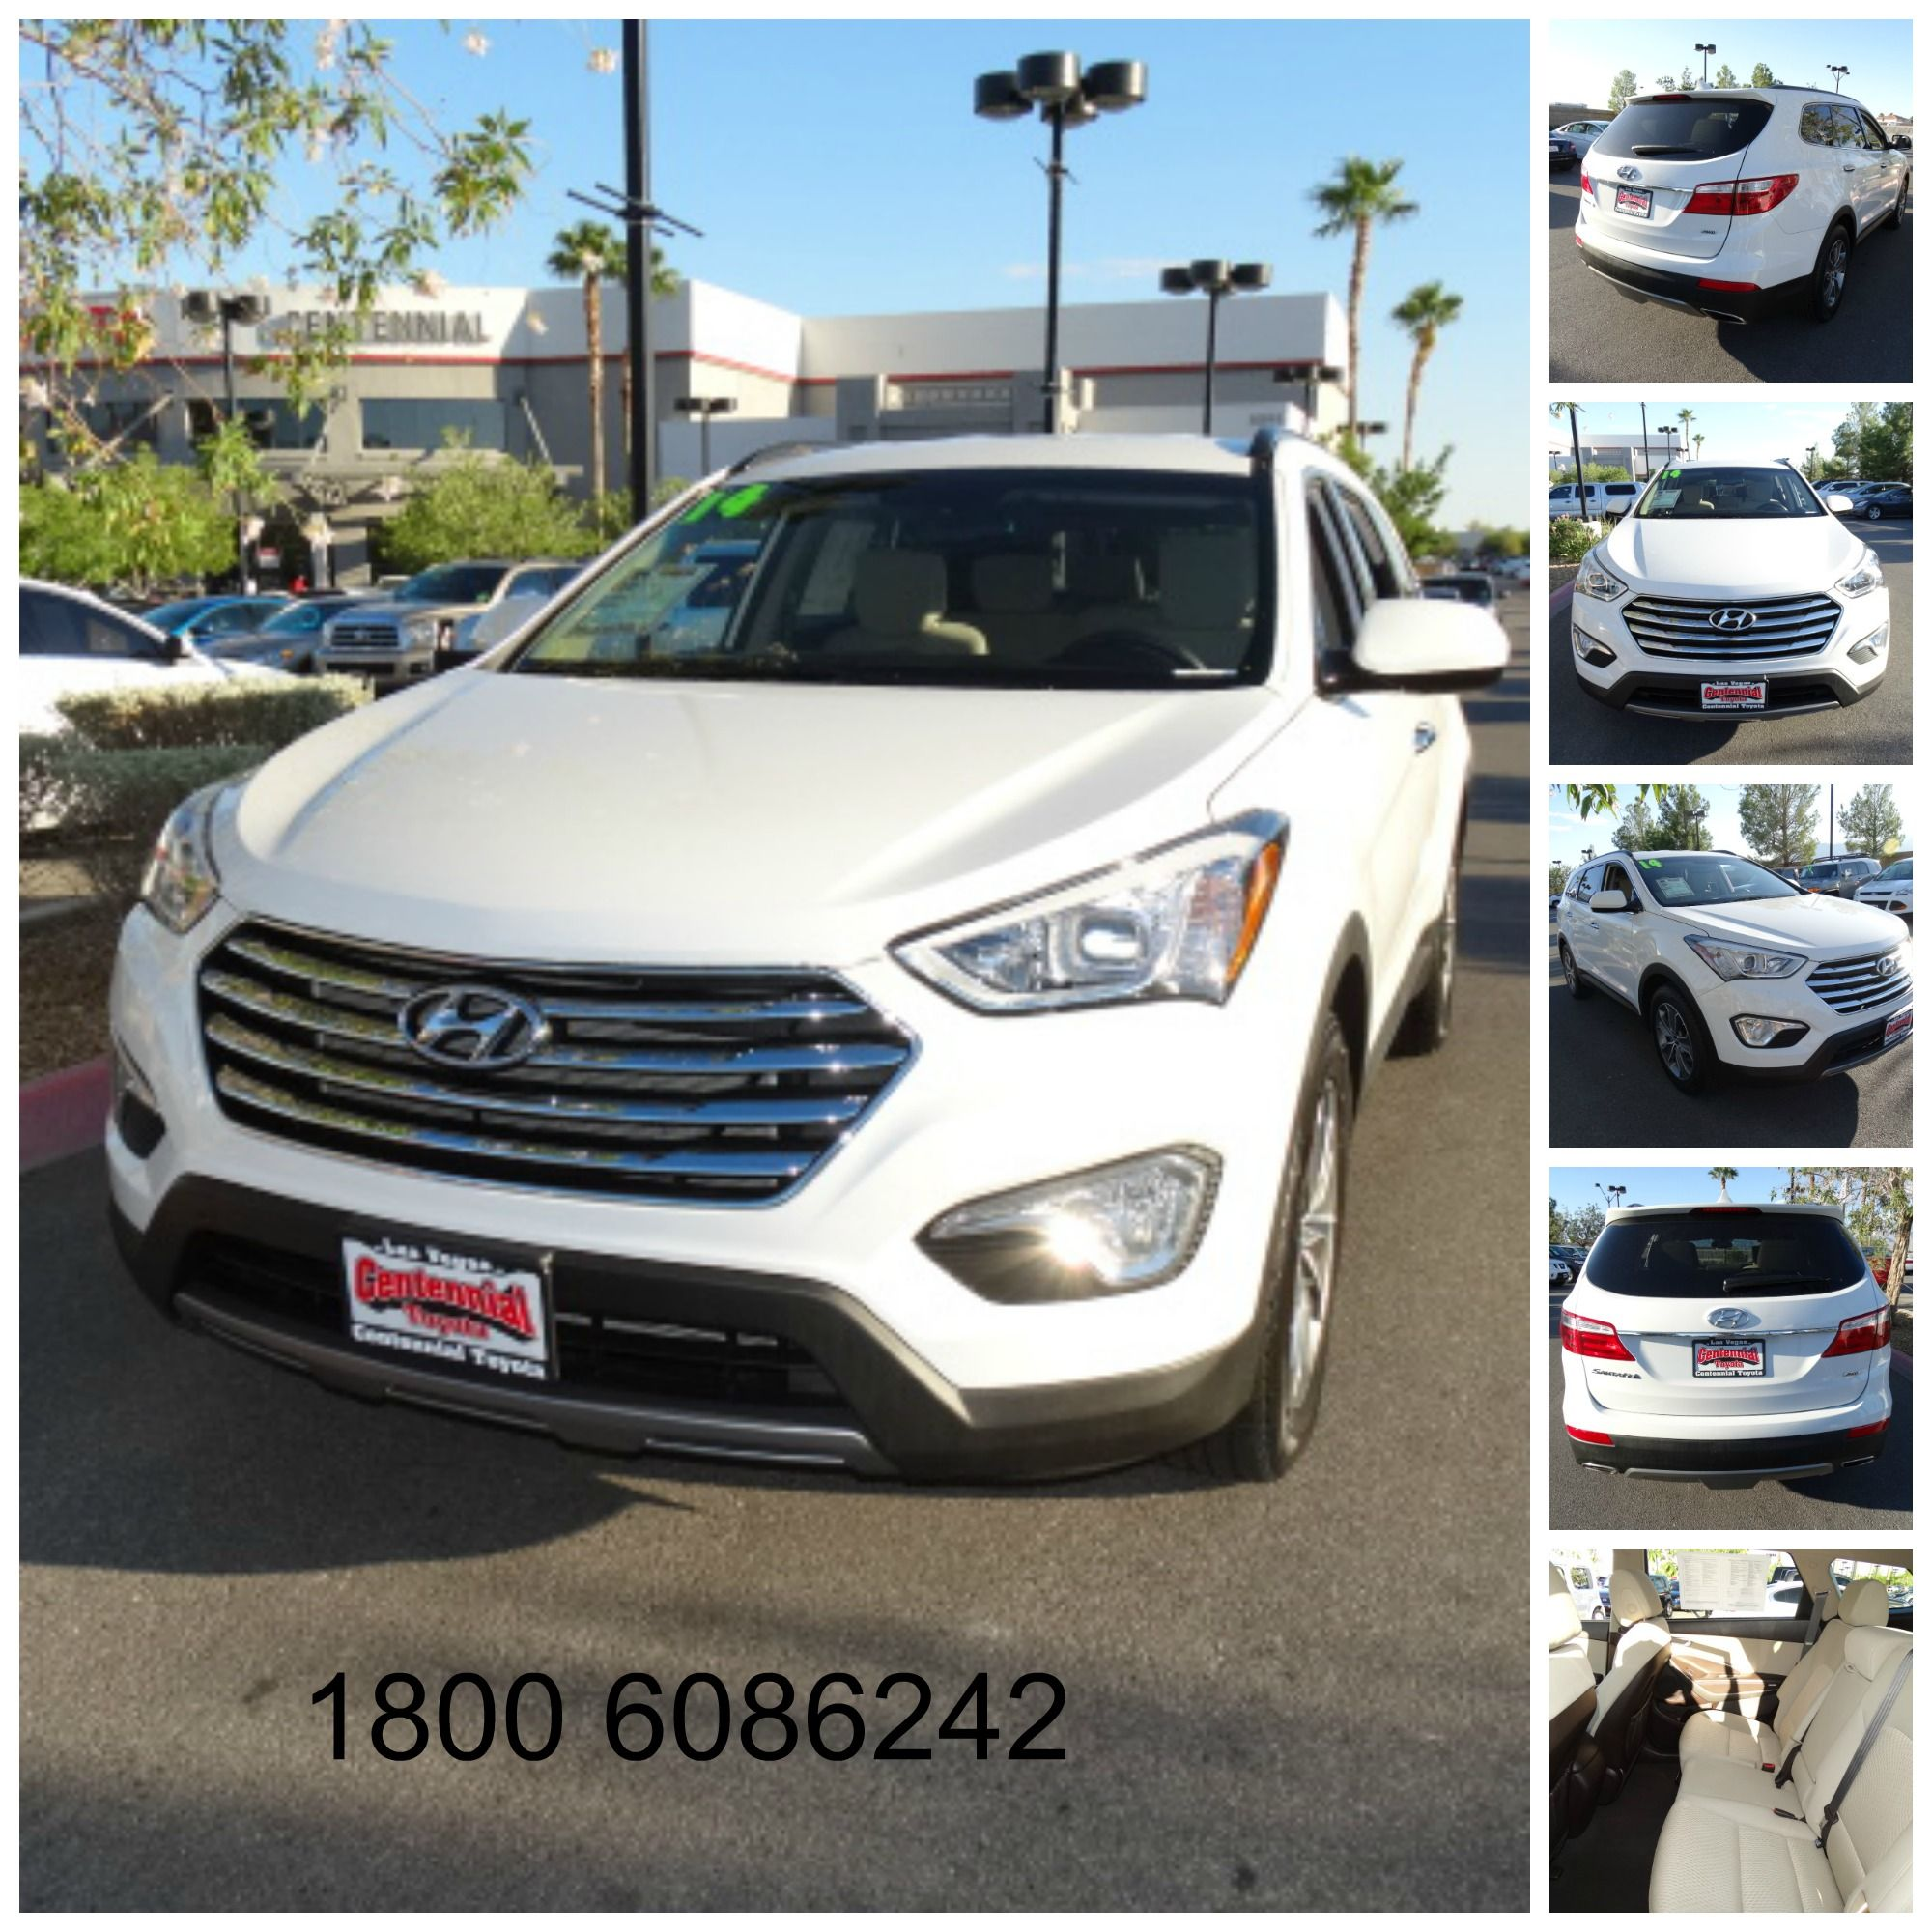 2014 Hyundai Santa Fe GLS Sport  Stock Number 340511 VIN Number: KM8SMDHF2EU042002 Price: $28,999 Used truck 2014 Hyundai Santa Fe GLS Sport for sale, transmission 6 speed automatic, Downhill Assist Control, AM/FM Stereo, Hill Start Assist Control, MP3 Single Disc, traction Control Sirius XM Satellite, Electronic Stablity Control, Bluetooth Wireless, ABS 4 Wheel, Blue Link, Keyless Entry, Backup camera, Air Conditioning, Dual Air Bags, Air Conditioning Rear, Side Air Bags, power Windows